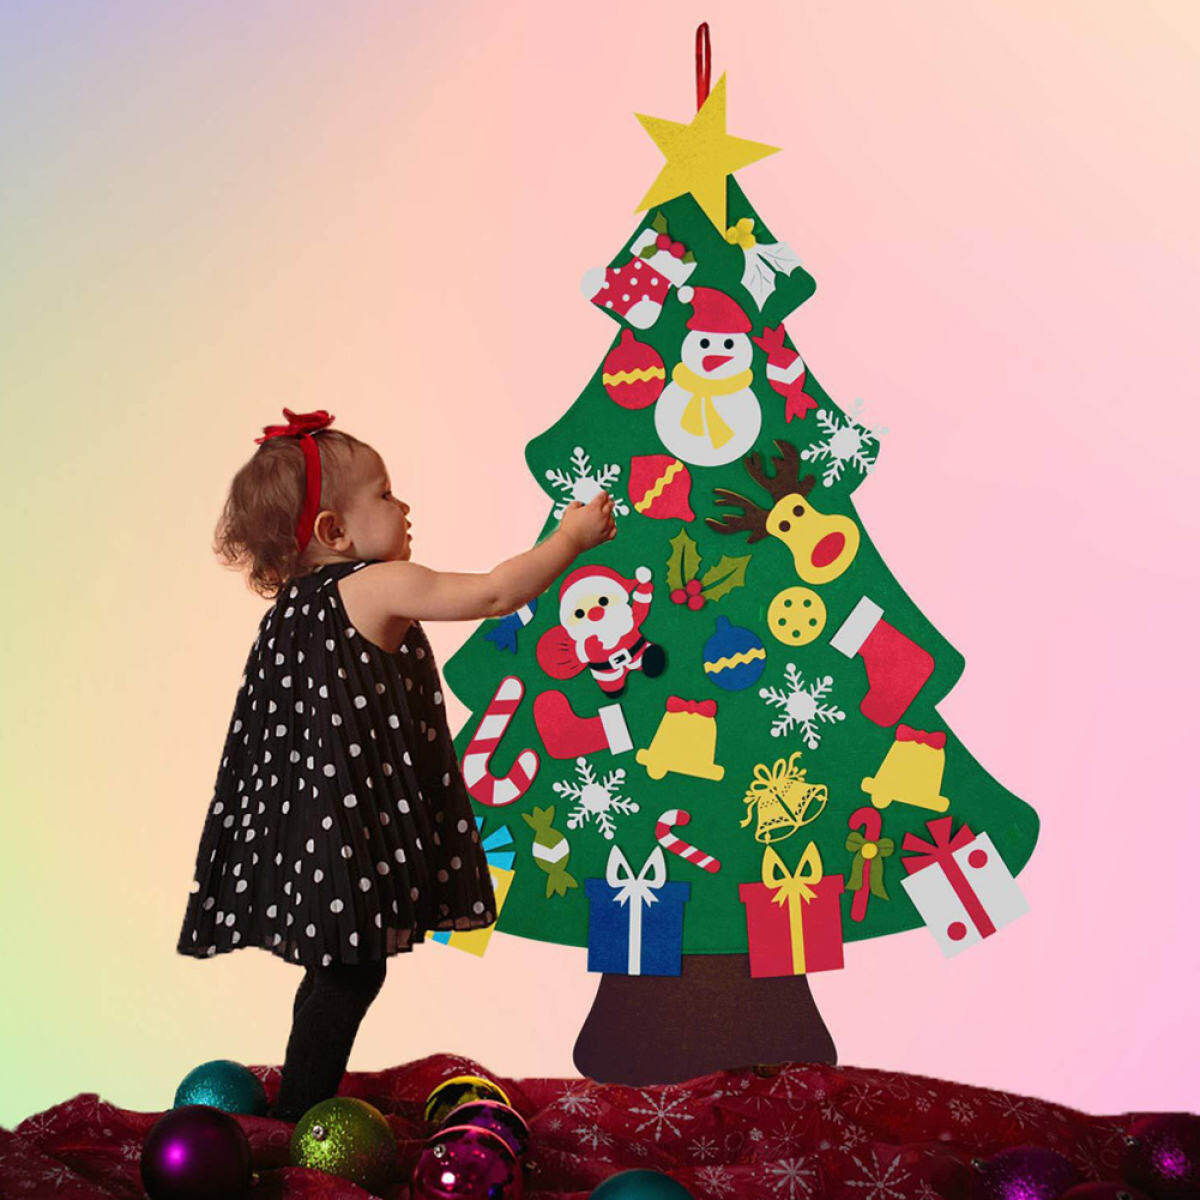 Diy Felt Christmas Tree With 30pcs Ornaments Door Wall Hanging Decorations Gifts For Kids Lazada